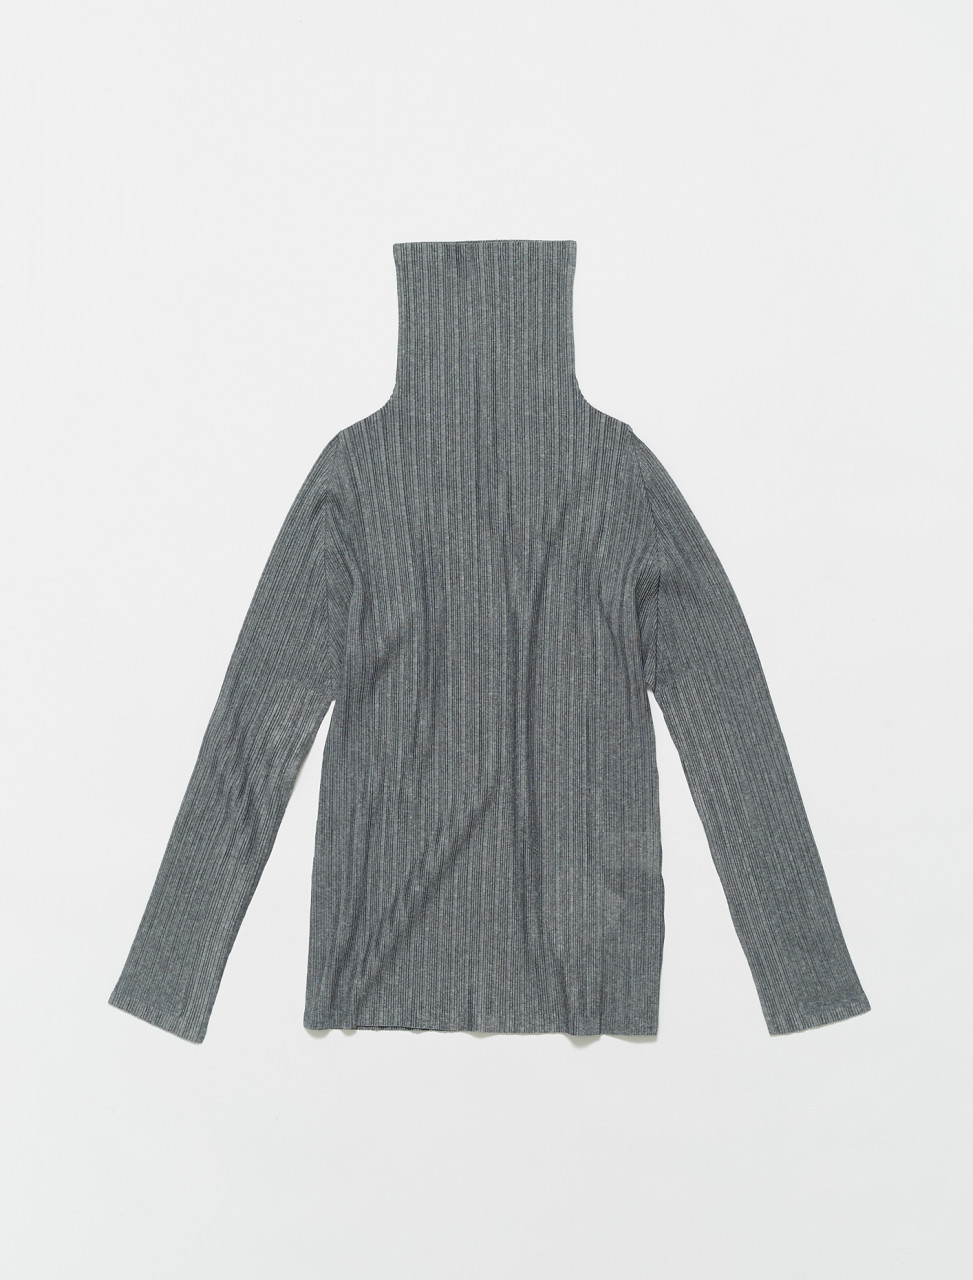 PP16FK114-16 PLEATS PLEASE ISSEY MIYAKE HIGH NECK TOP GREY